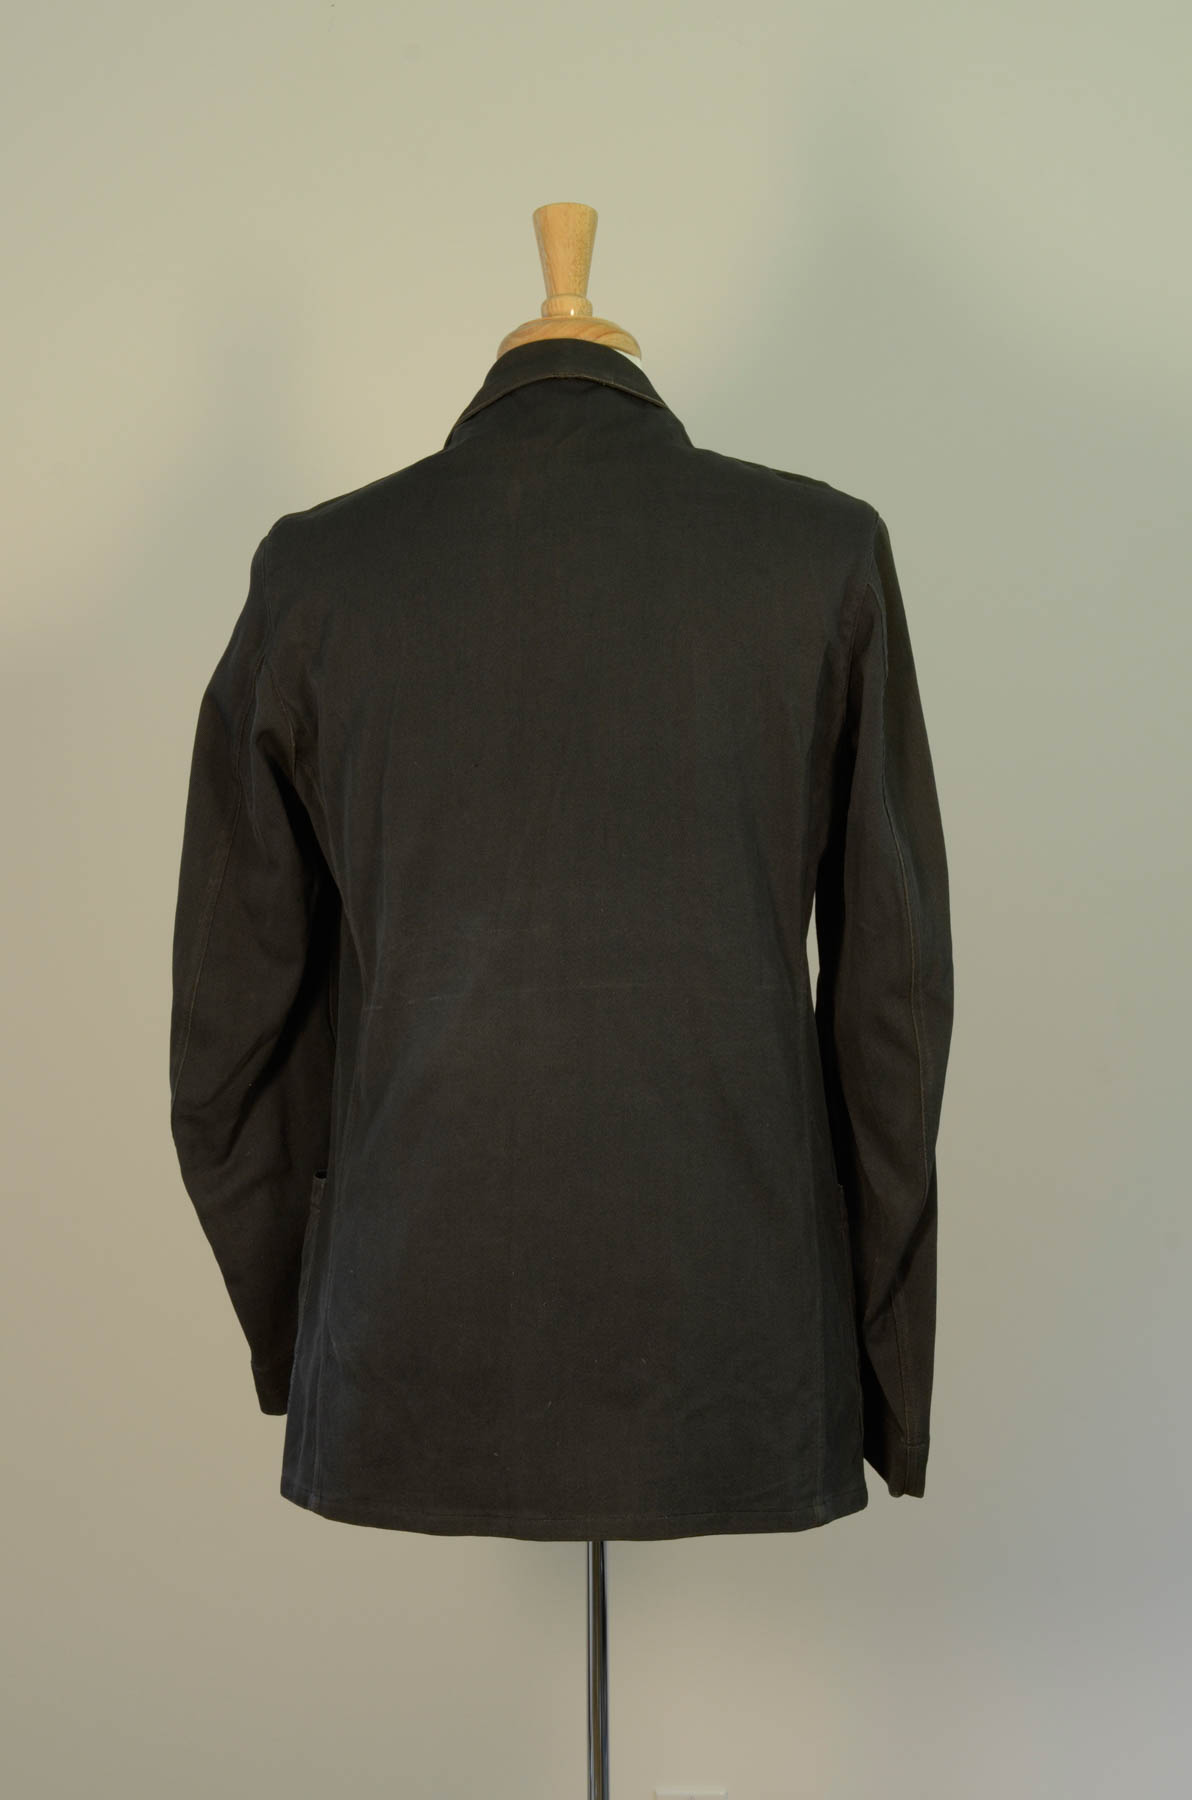 Reunion Jacket 1923 Variation I Rear